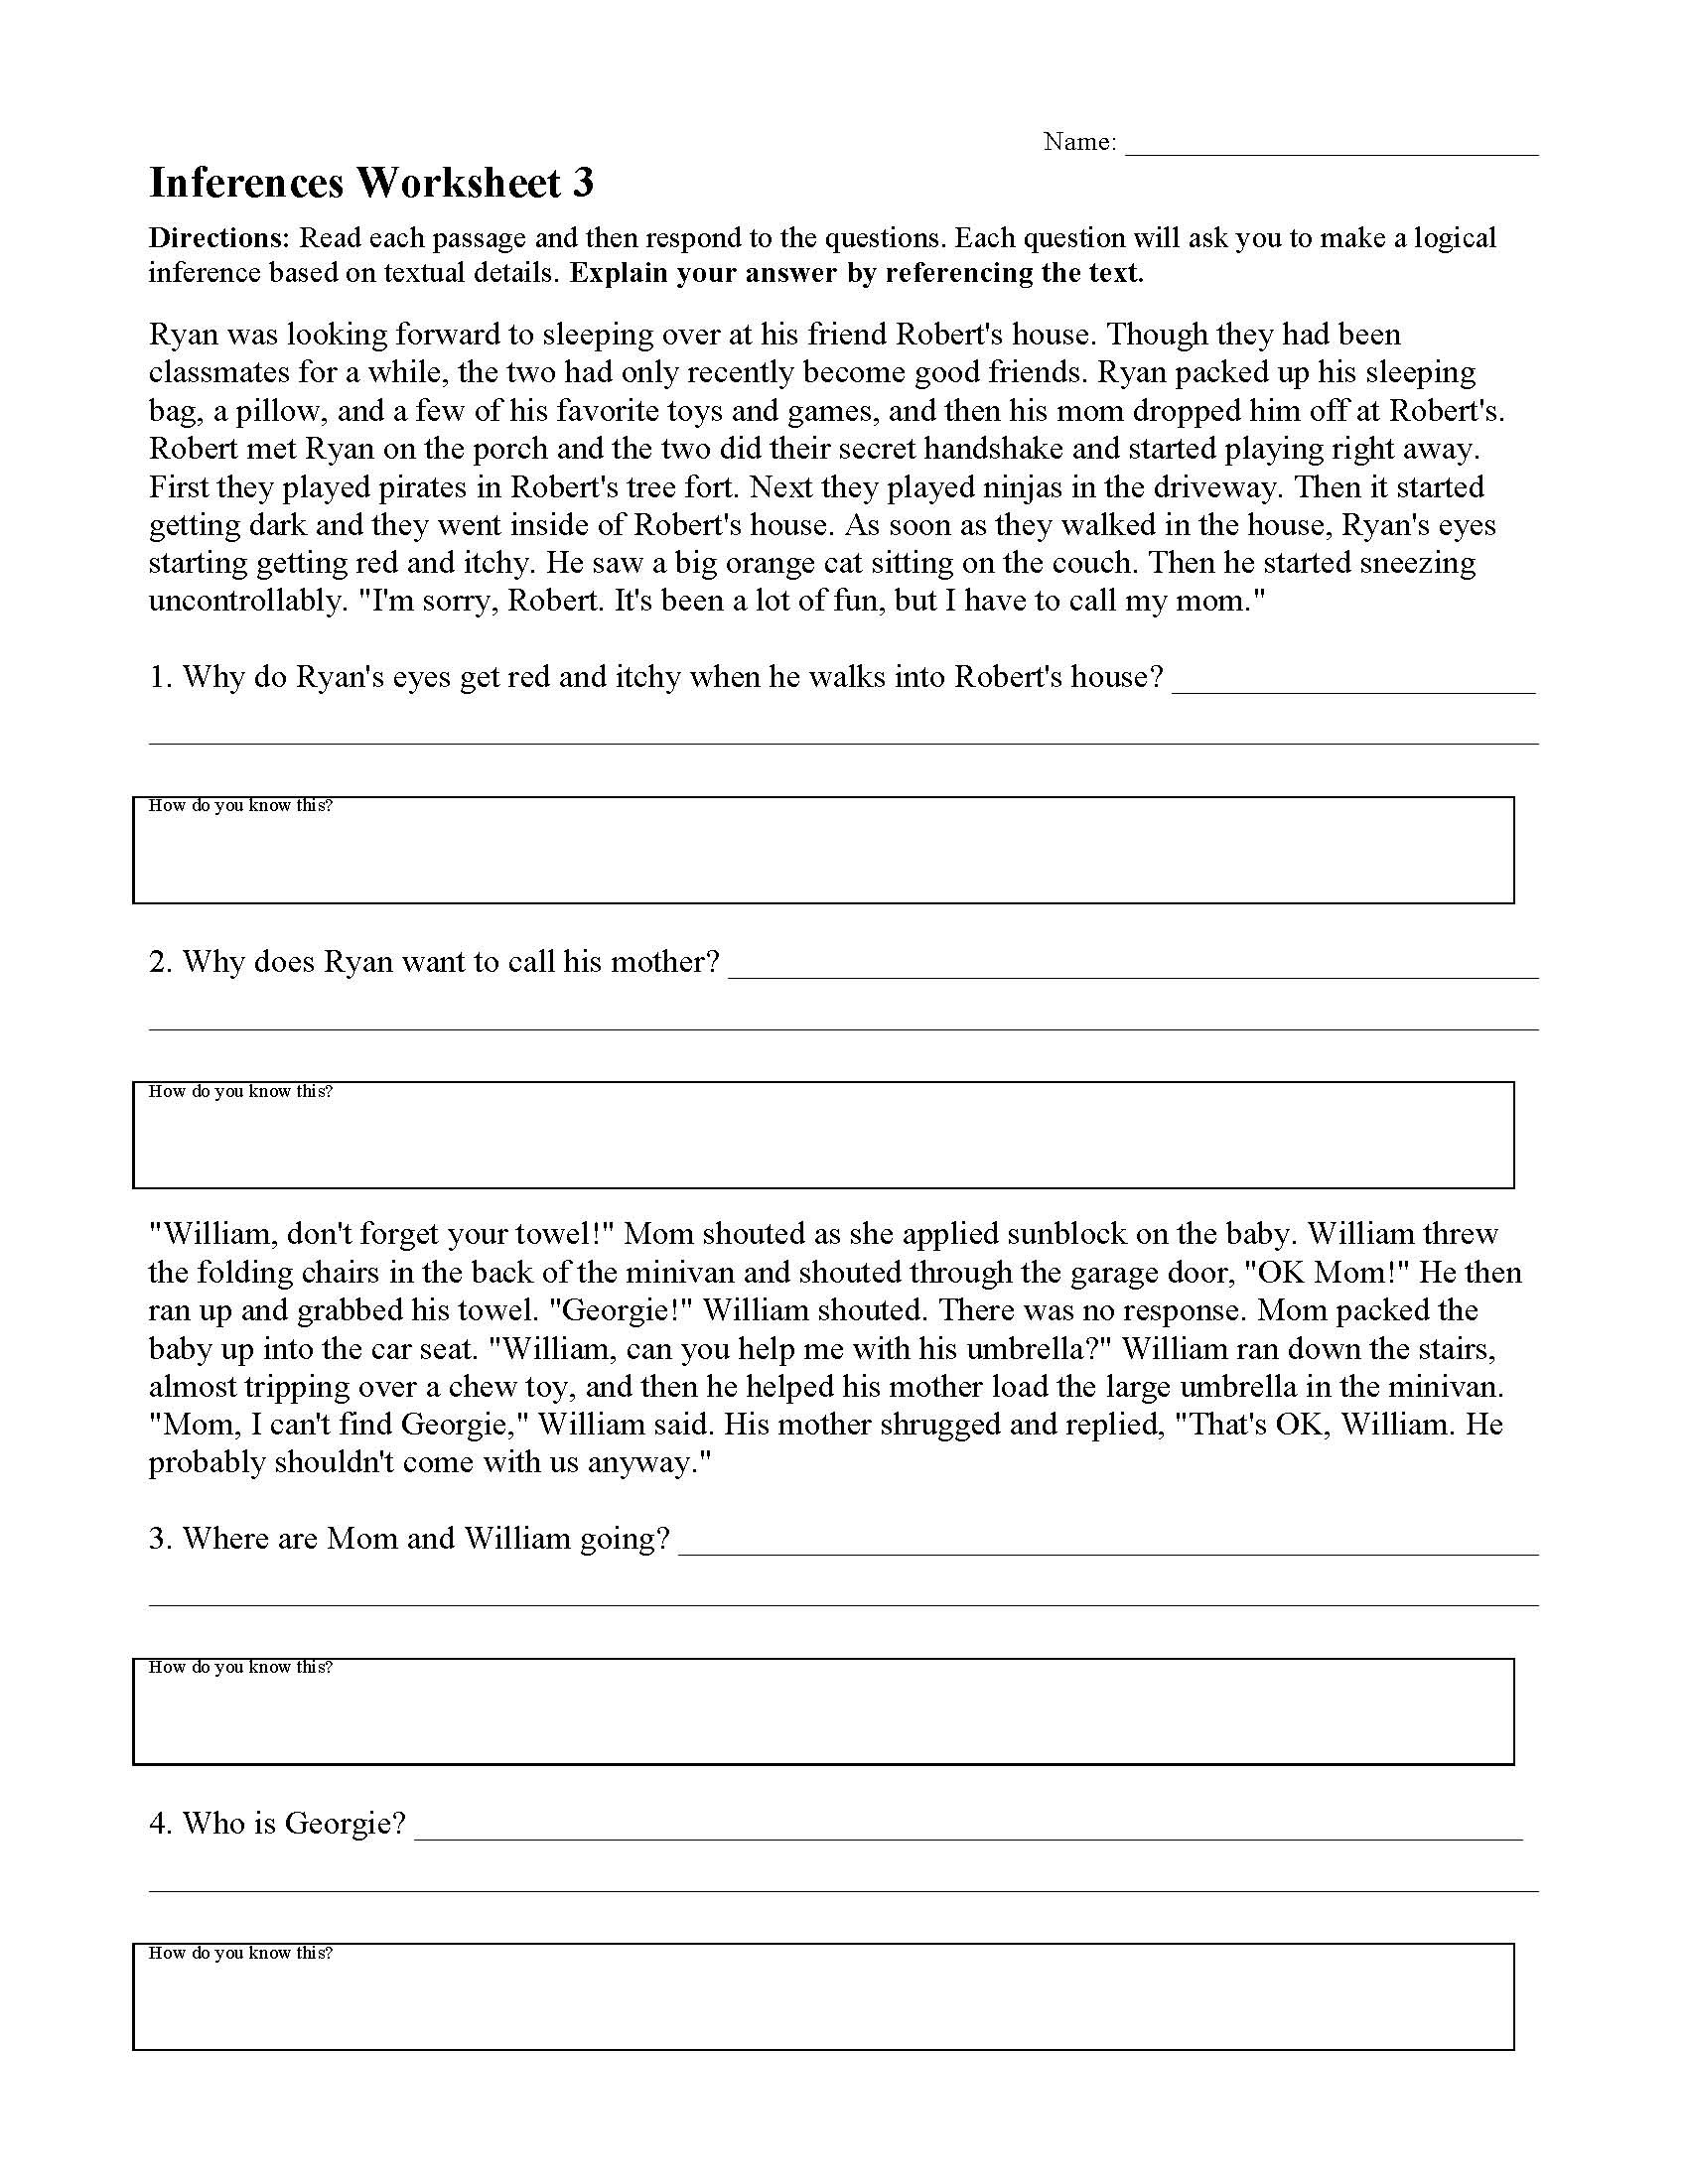 Inference Worksheets Grade 4 Inferences Worksheets